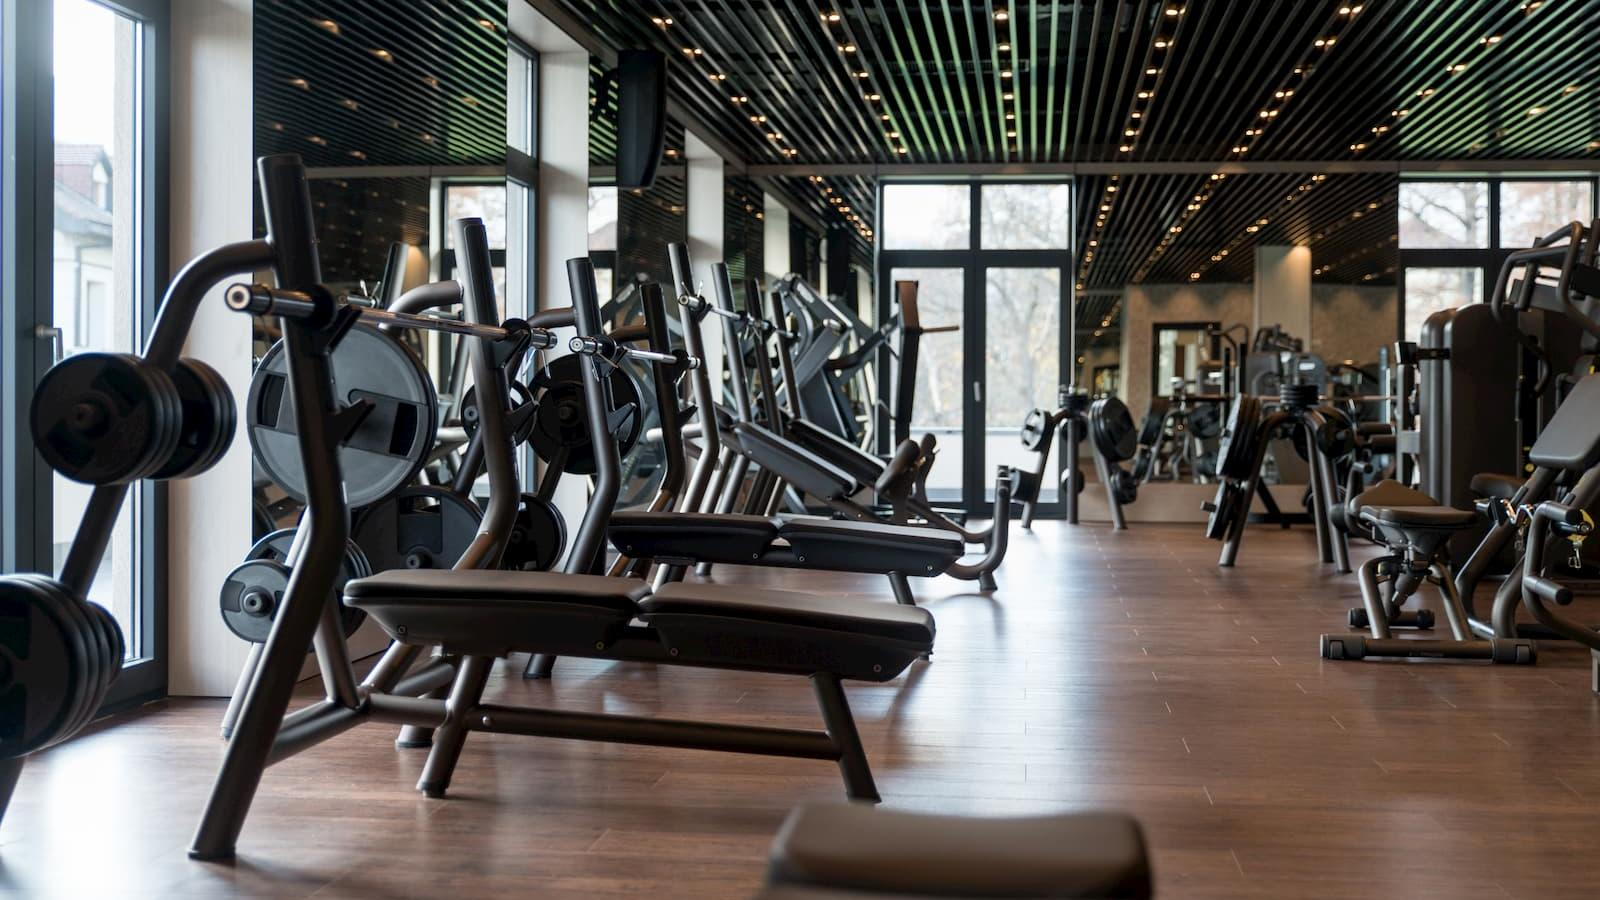 MoCI issues updated guidelines for gyms